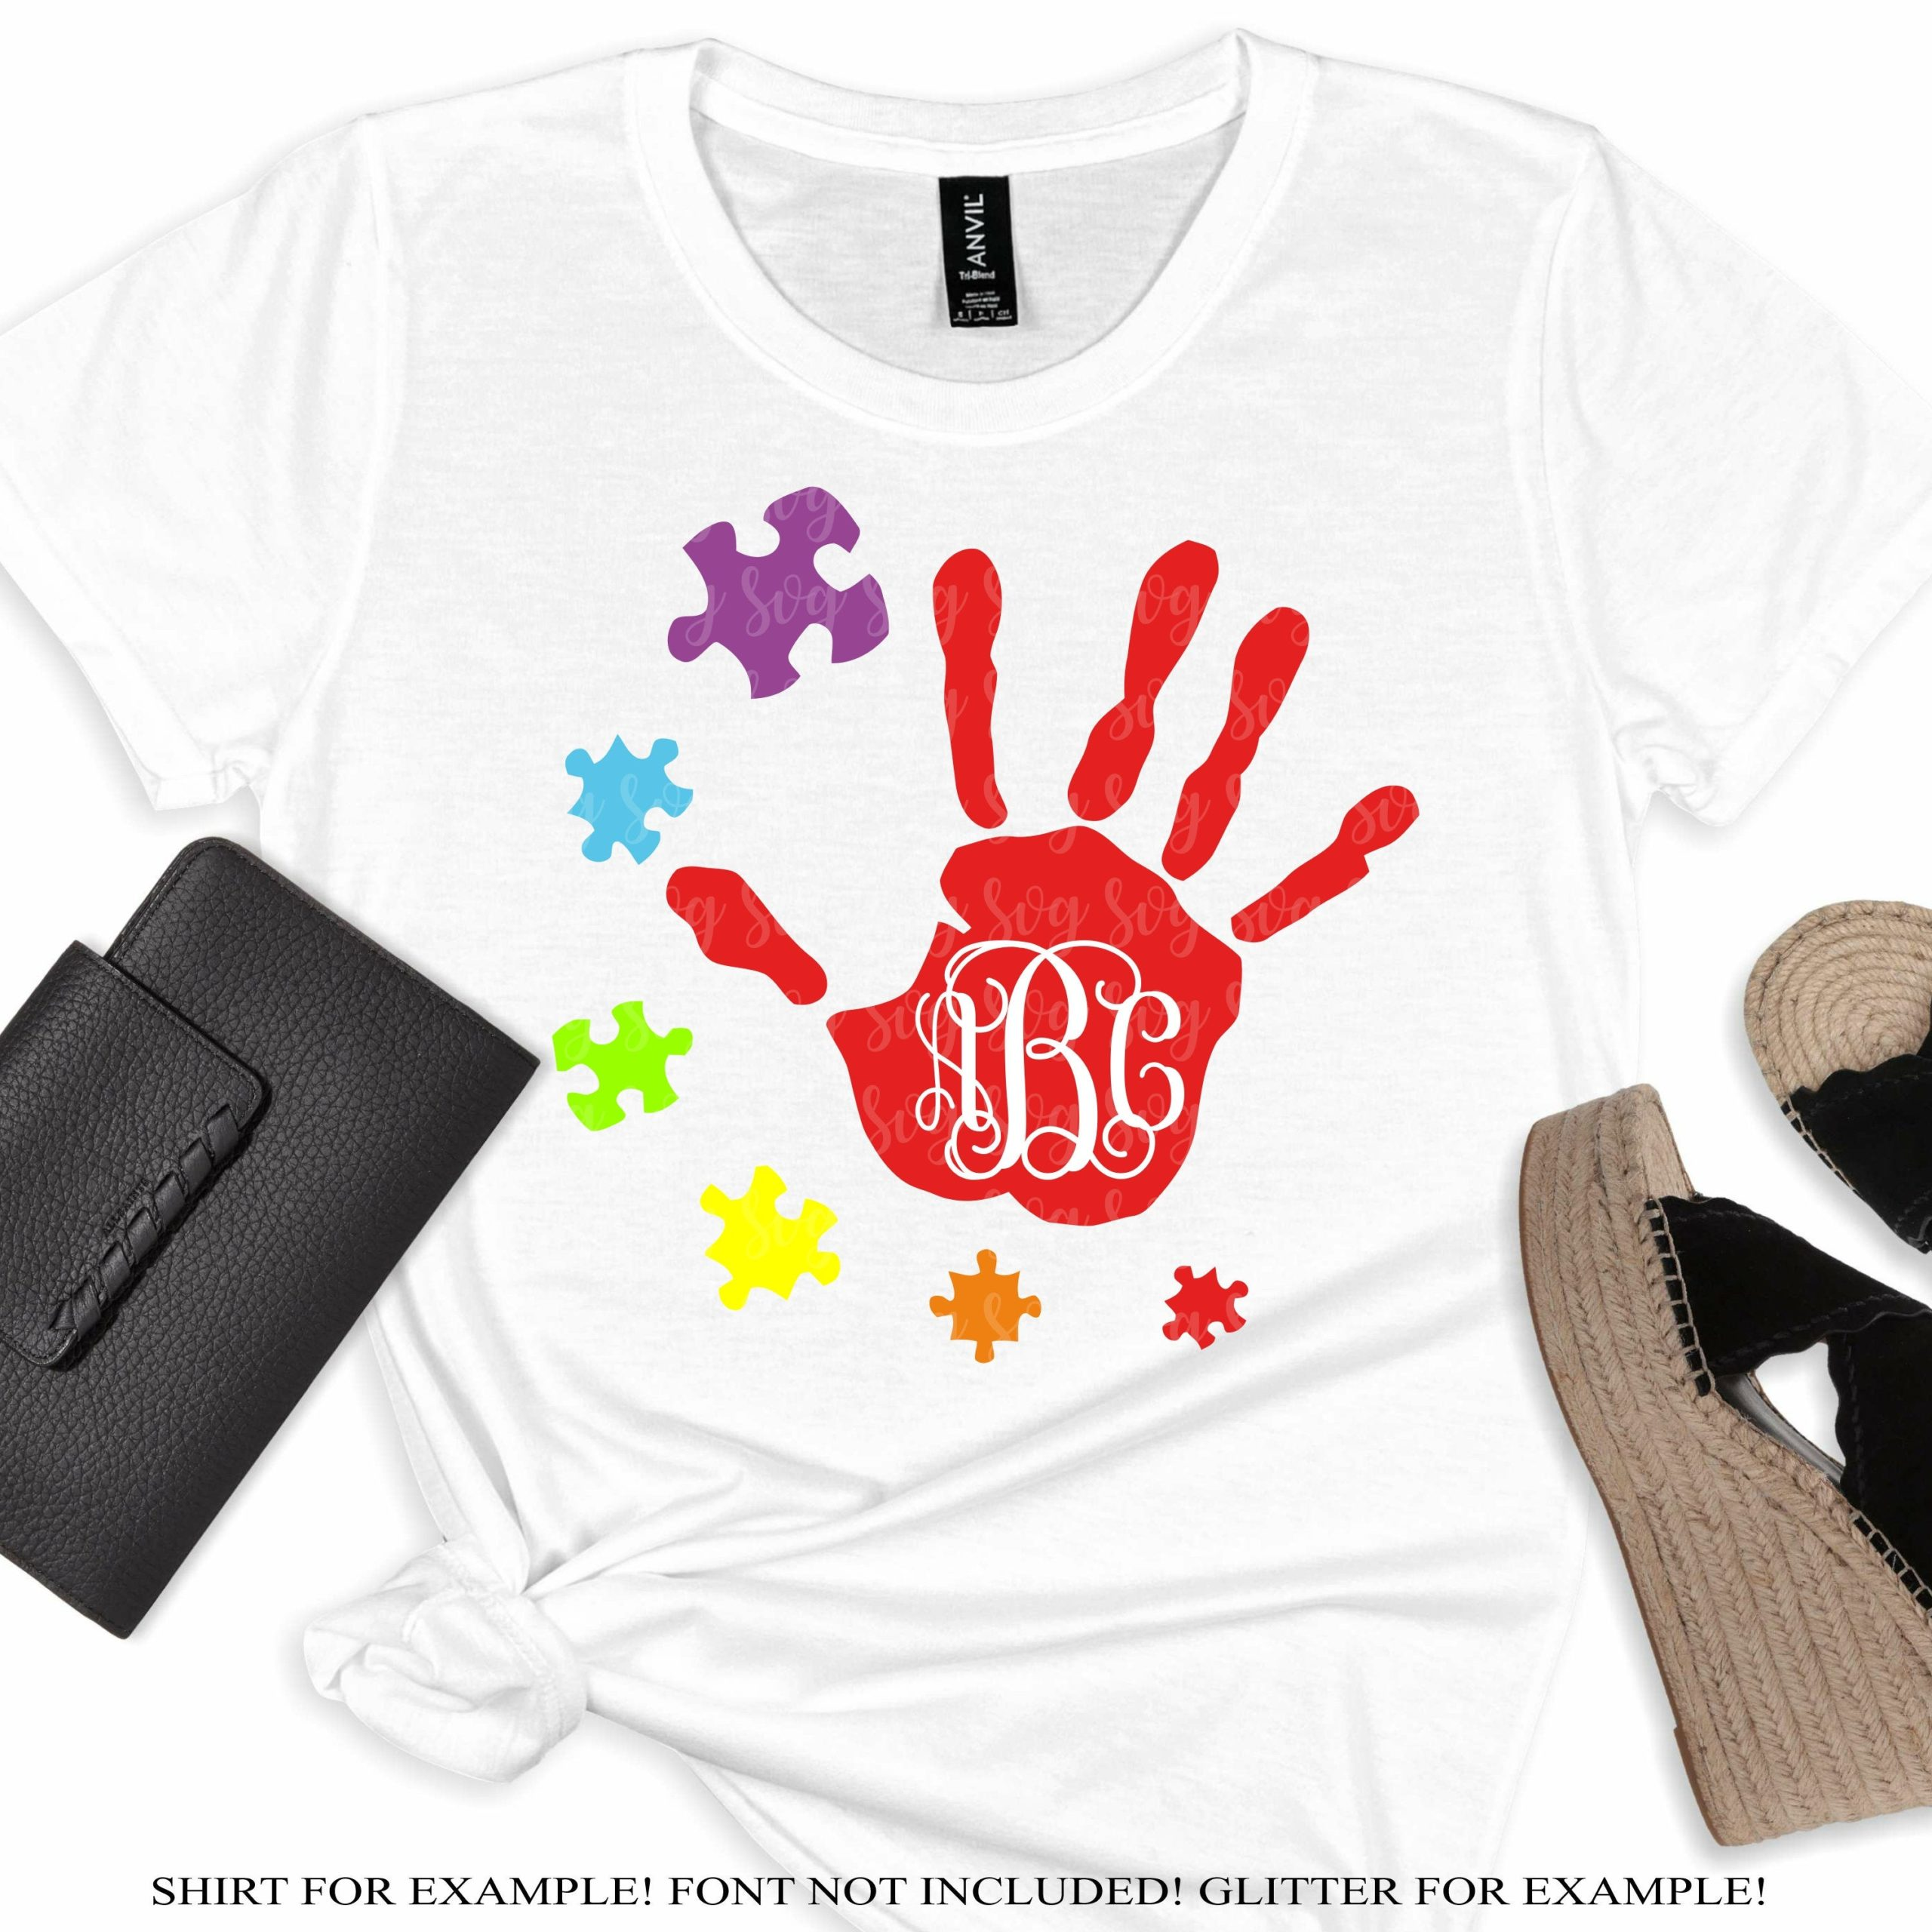 Autism-hand-print-svg-autism-svg-awareness-svg-autism-puzzle-svg-puzzle-svg-tshirt-svg-mom-svg-svg-for-cricut-silhouette-cut-file-5ef7912c